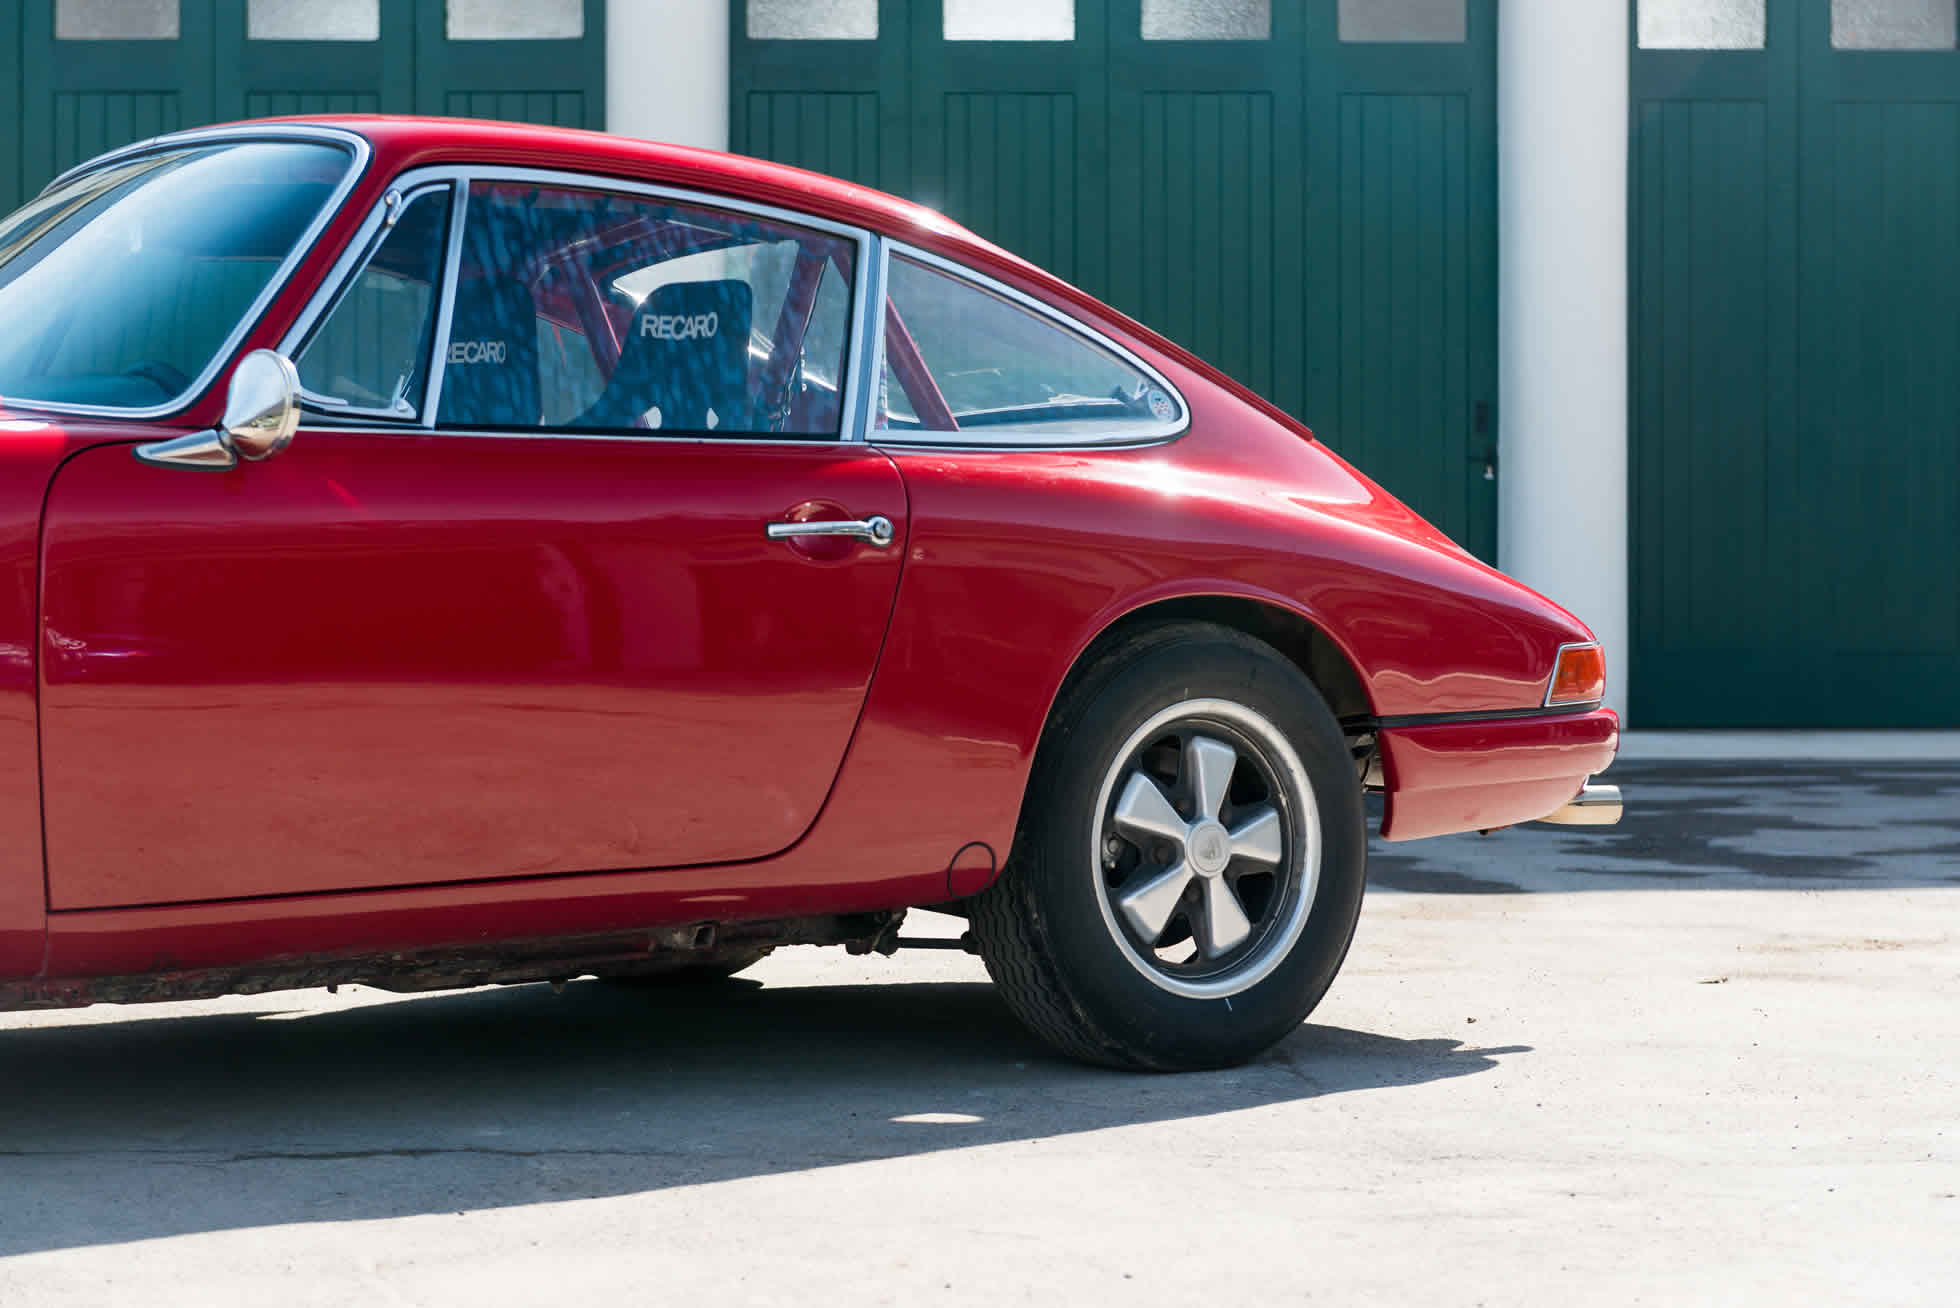 For Sale 1965 Porsche 911 rear view